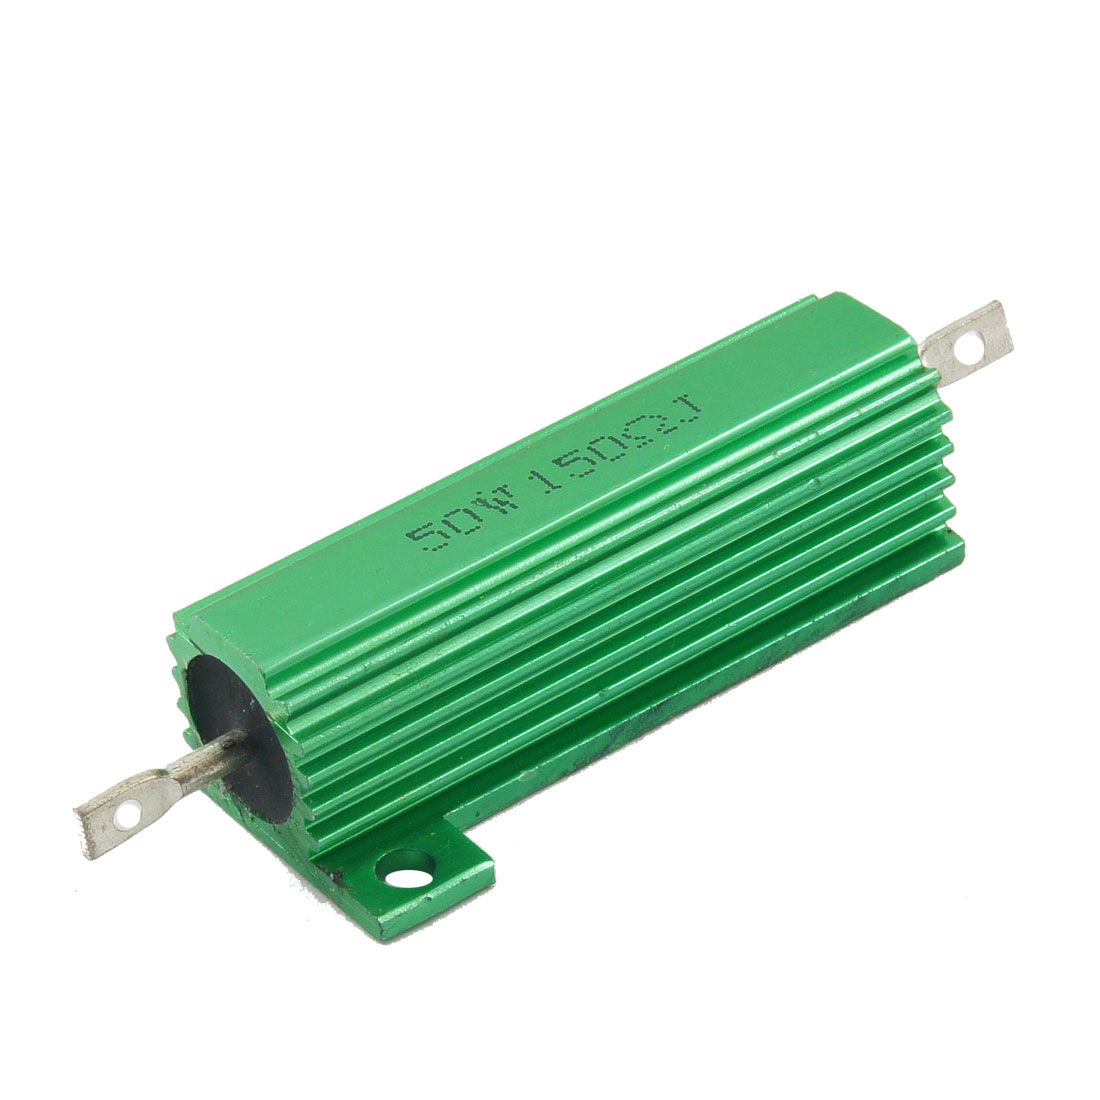 Green 50 Watt 150 Ohm 5% Aluminum Shell Wire Wound Resistor